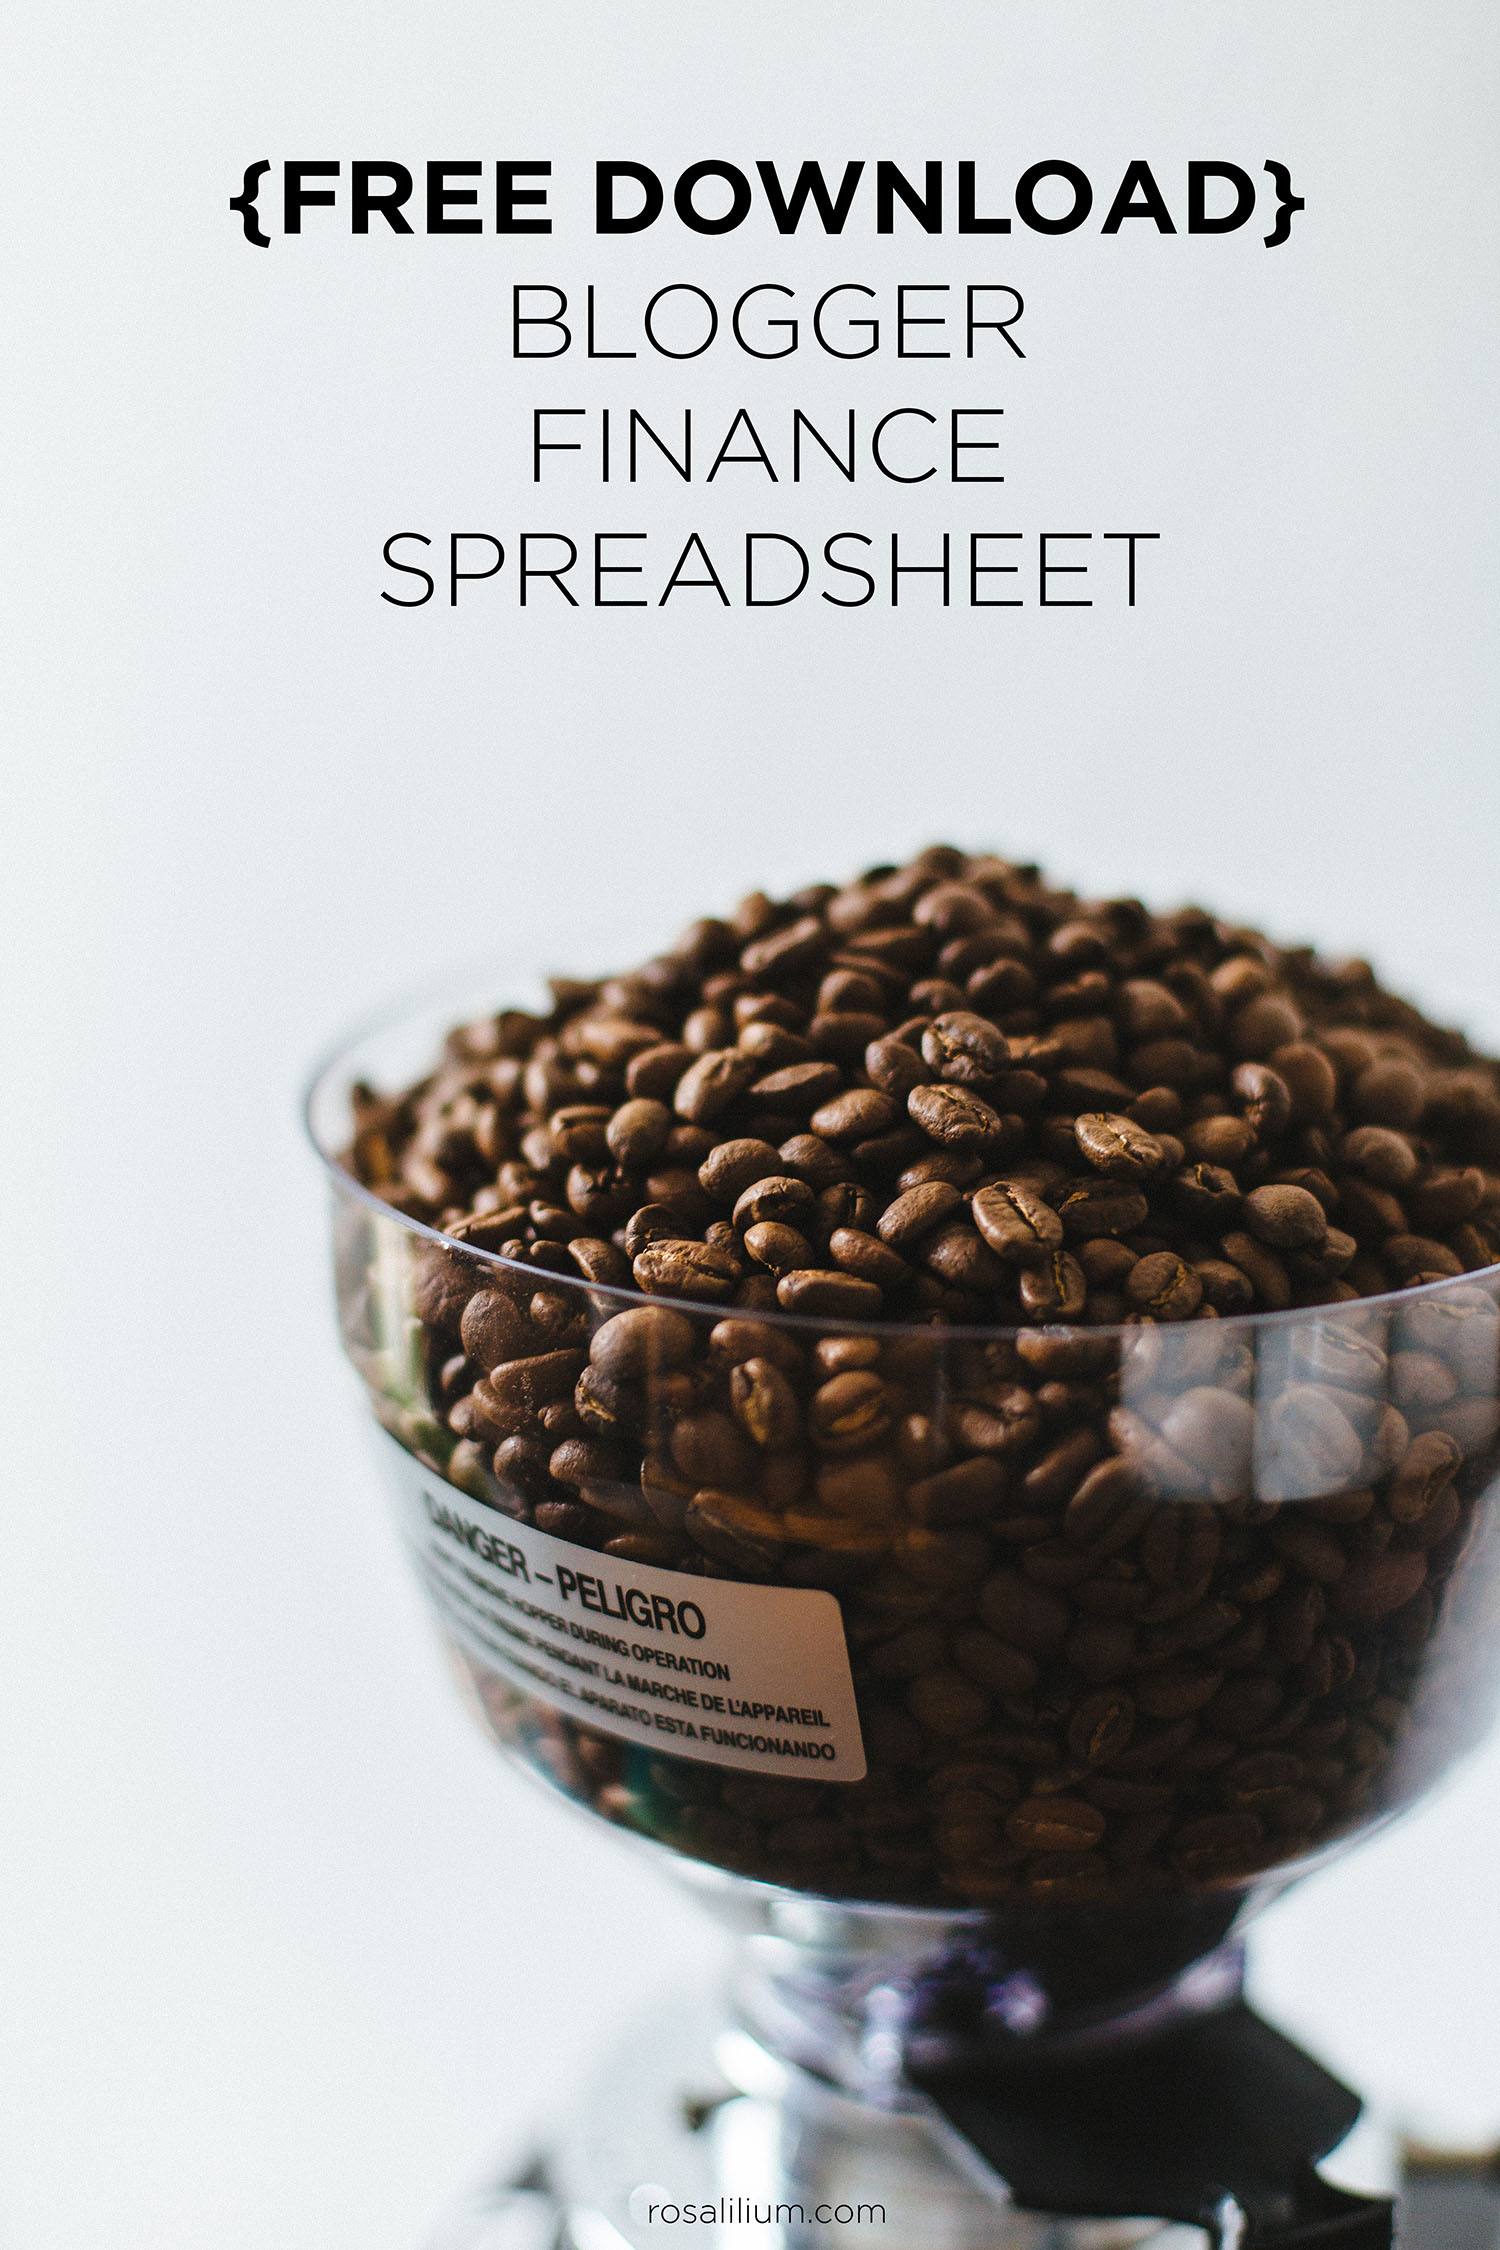 Blogger Finance Spreadsheet